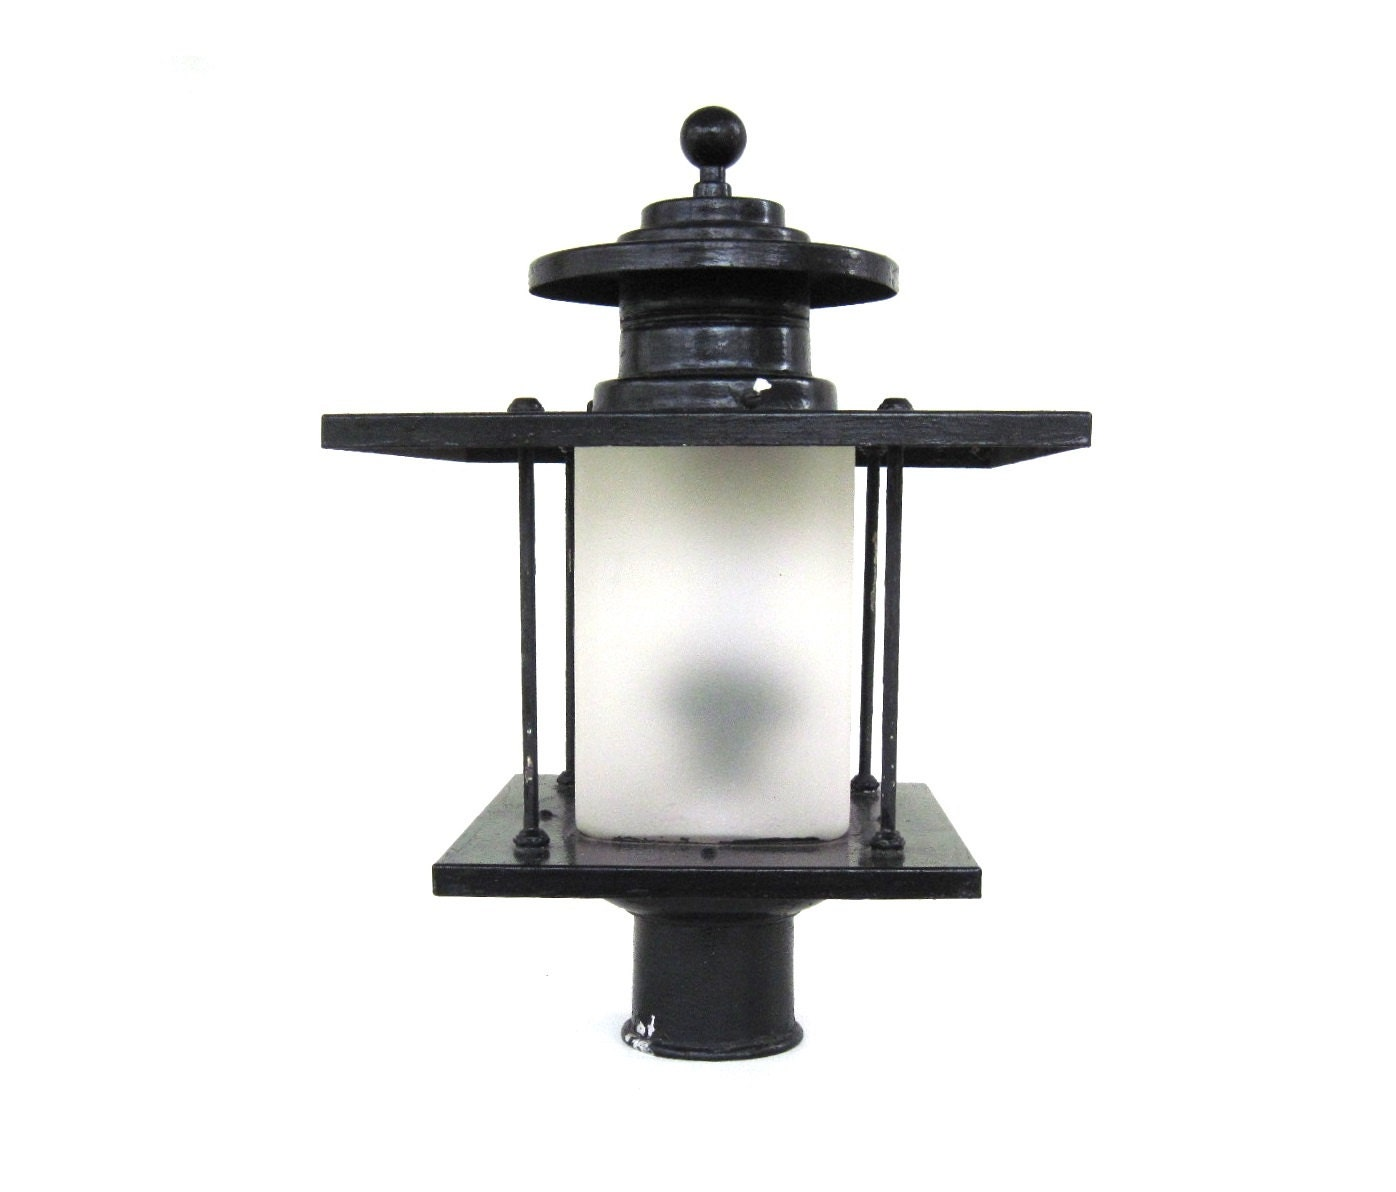 artolier exterior lamp post light fixture lantern yard outdoor. Black Bedroom Furniture Sets. Home Design Ideas